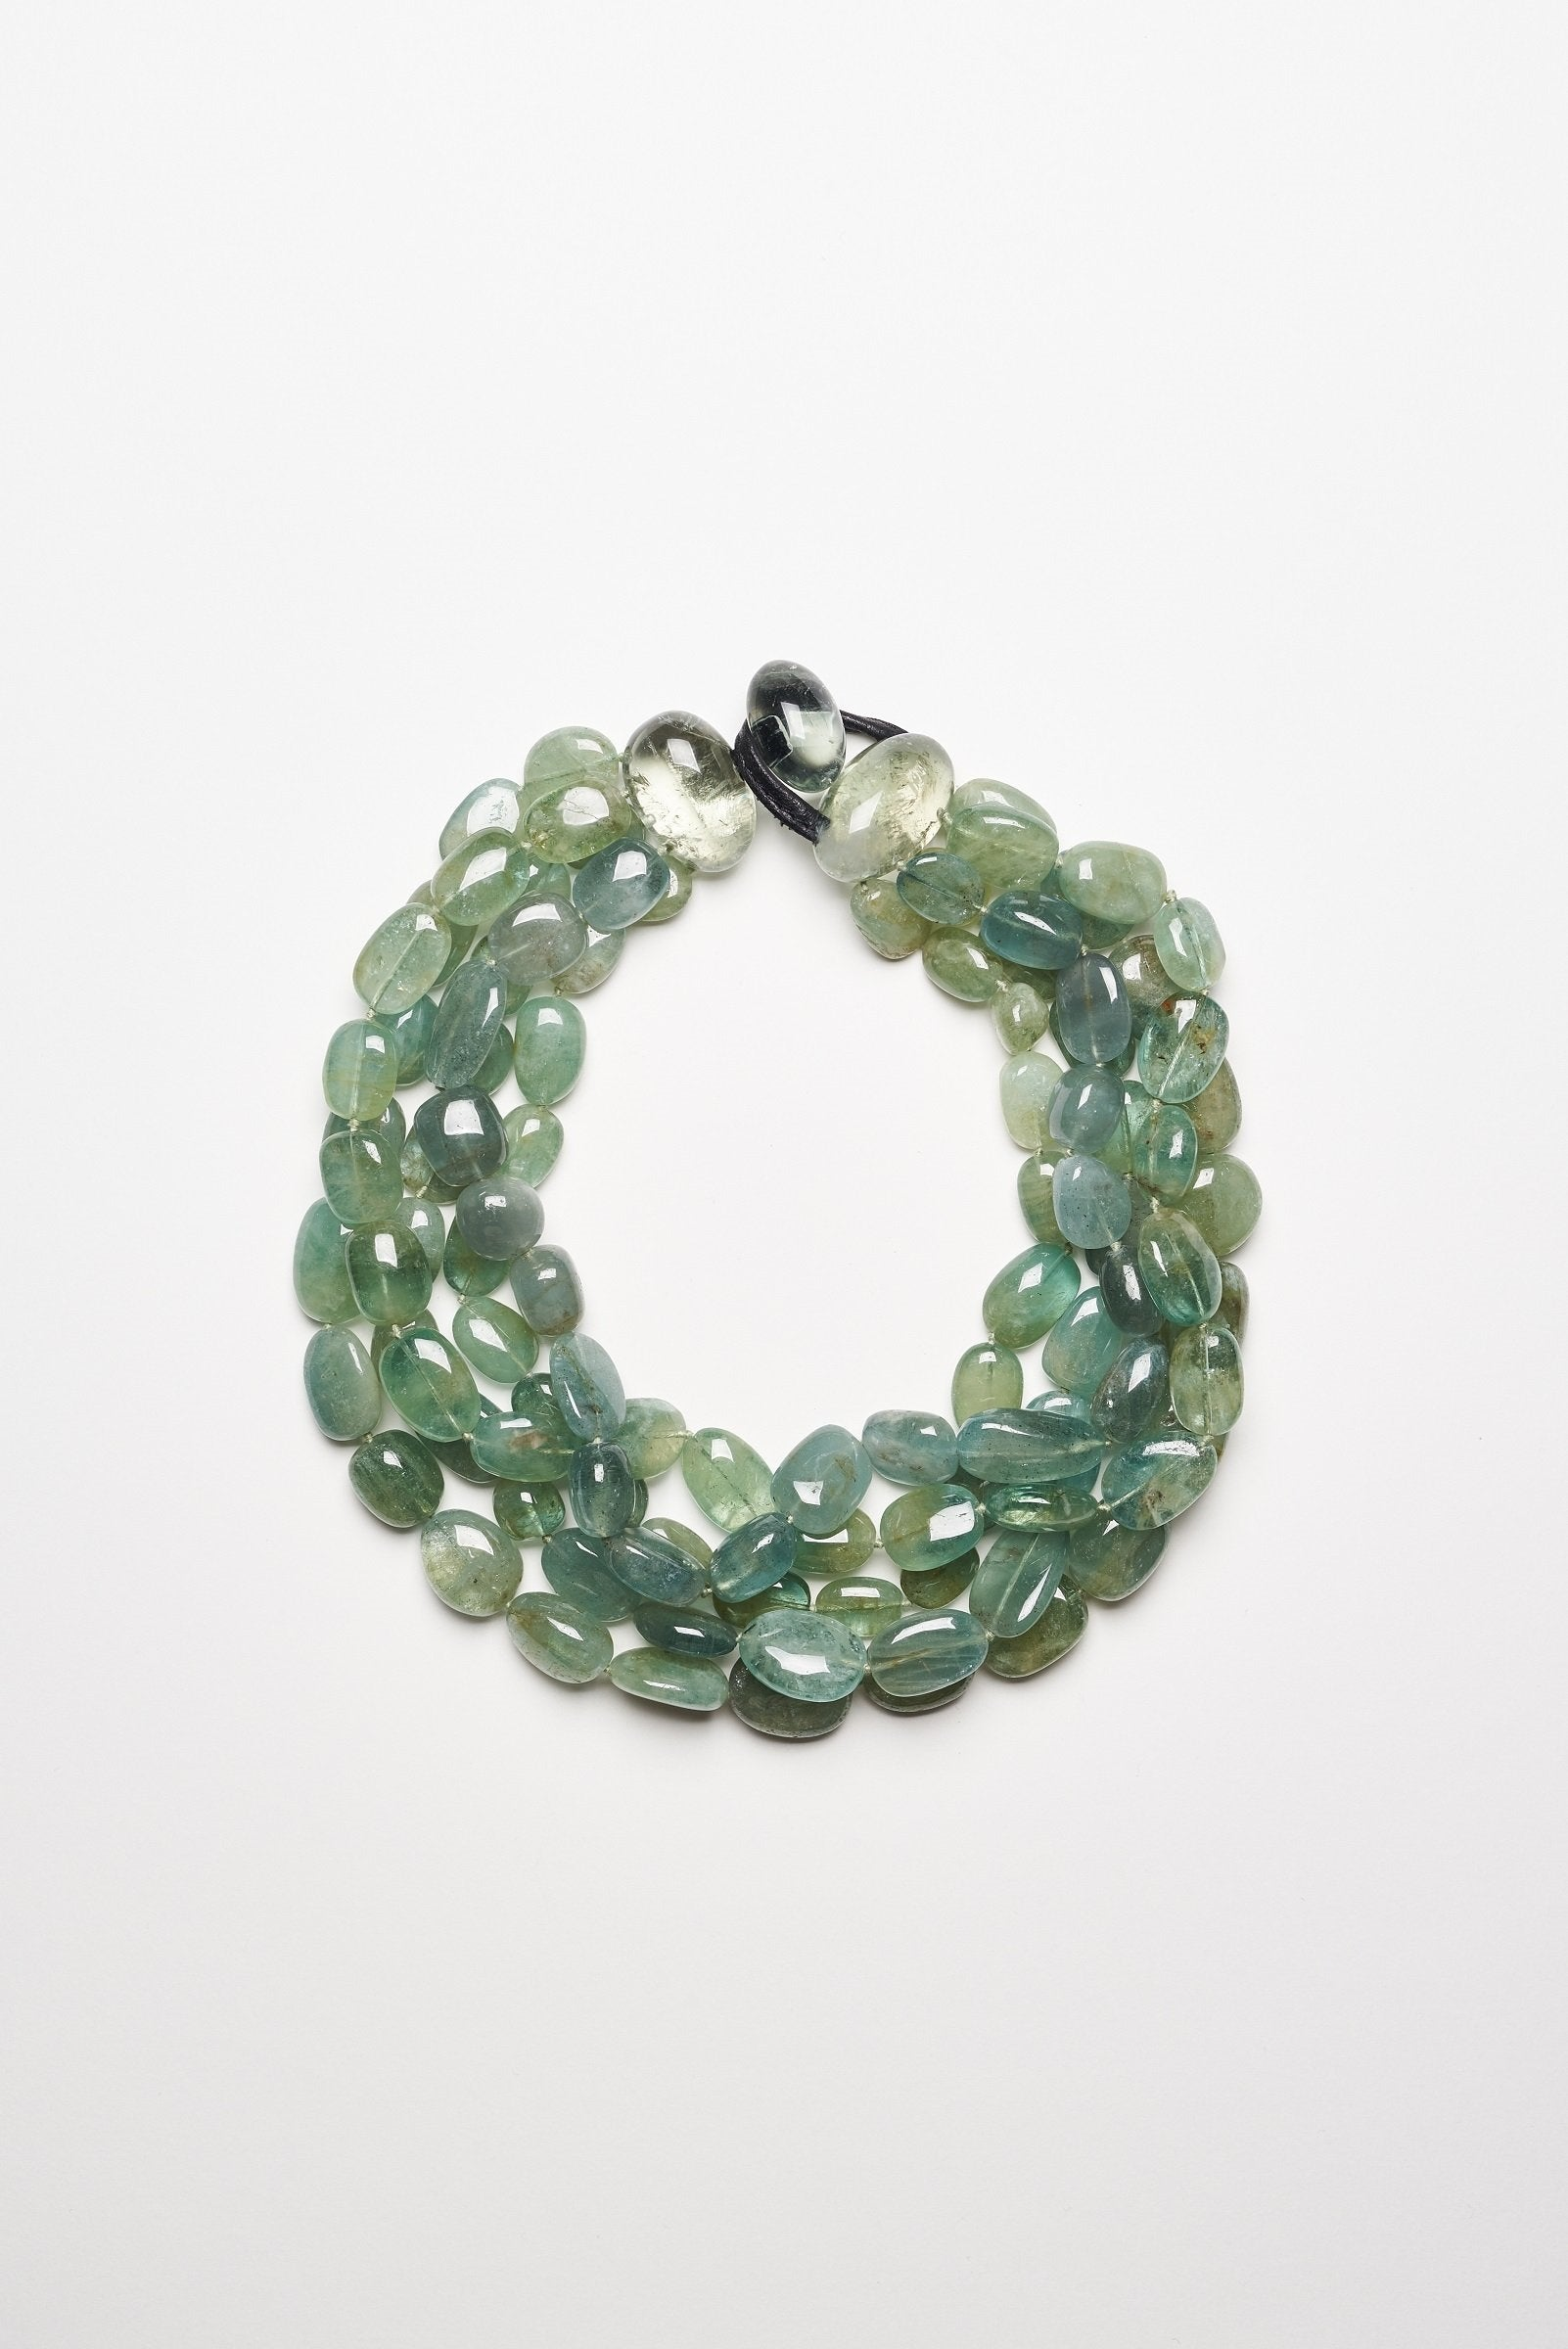 Necklace in  aventurine and green amethyst